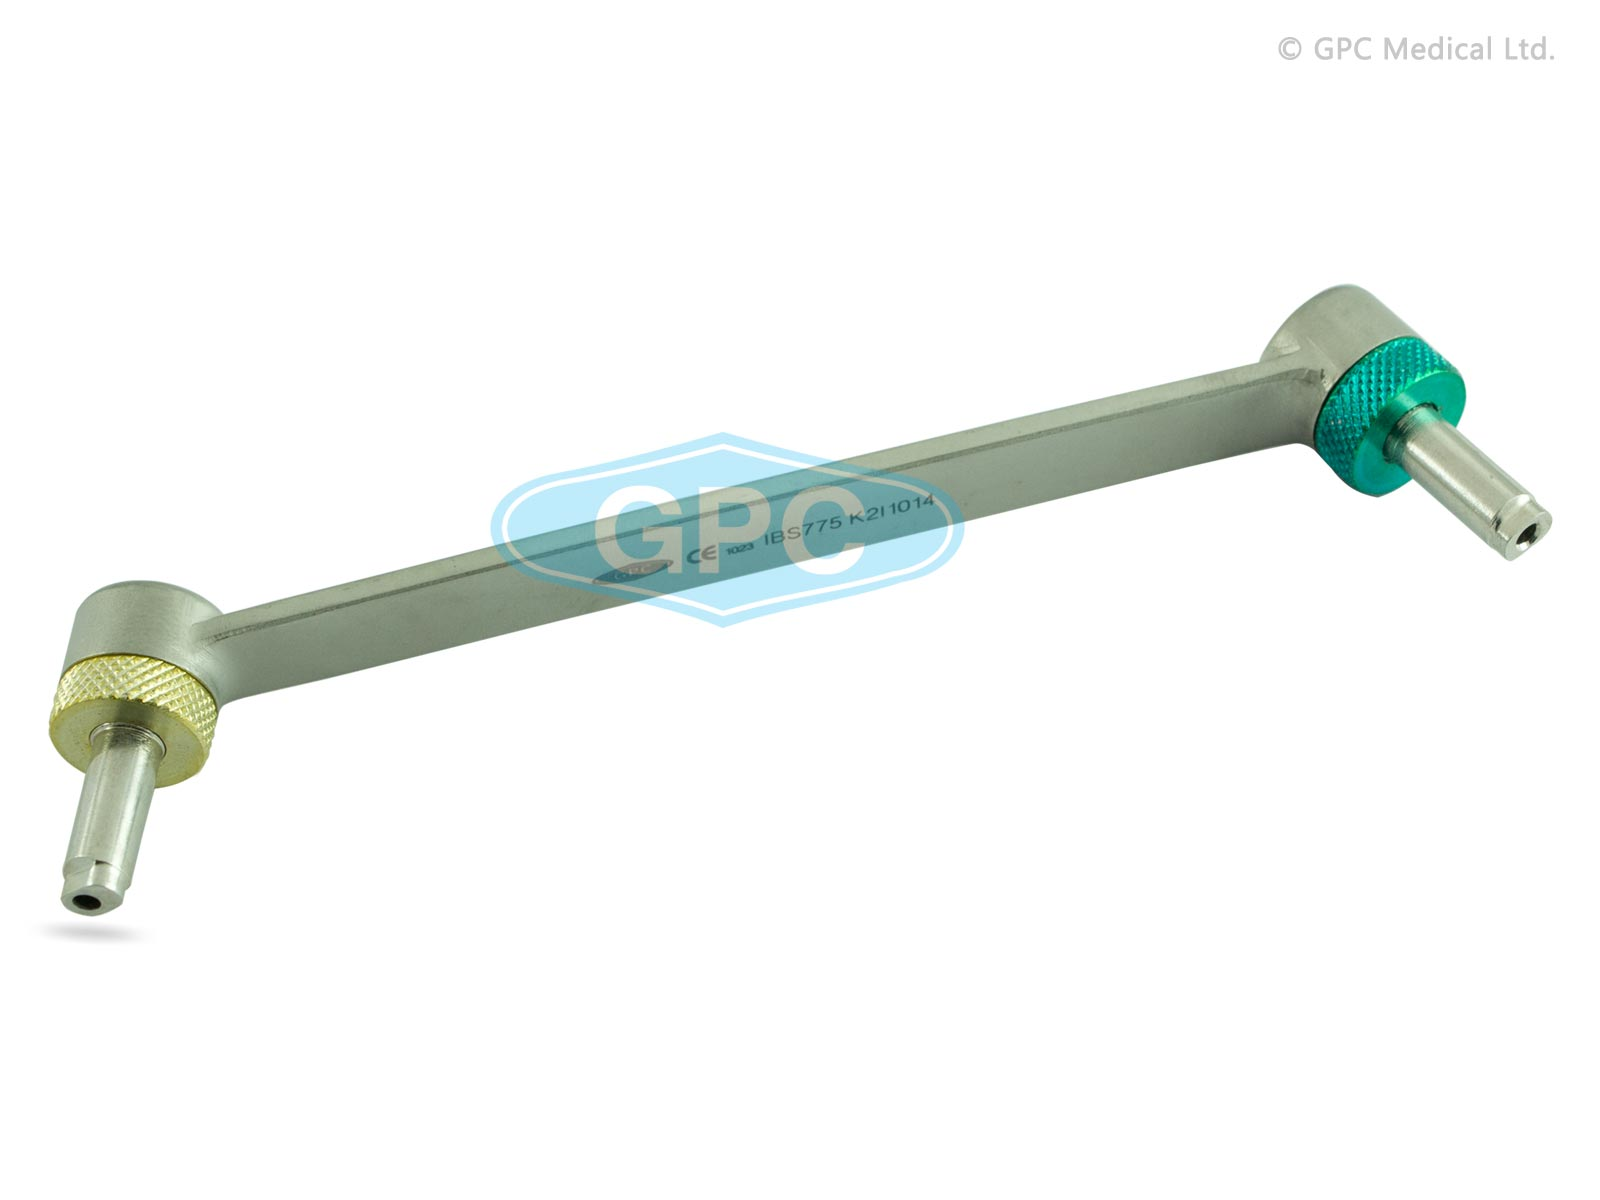 Neutral and Loaded Drill Guide for 2.5mm